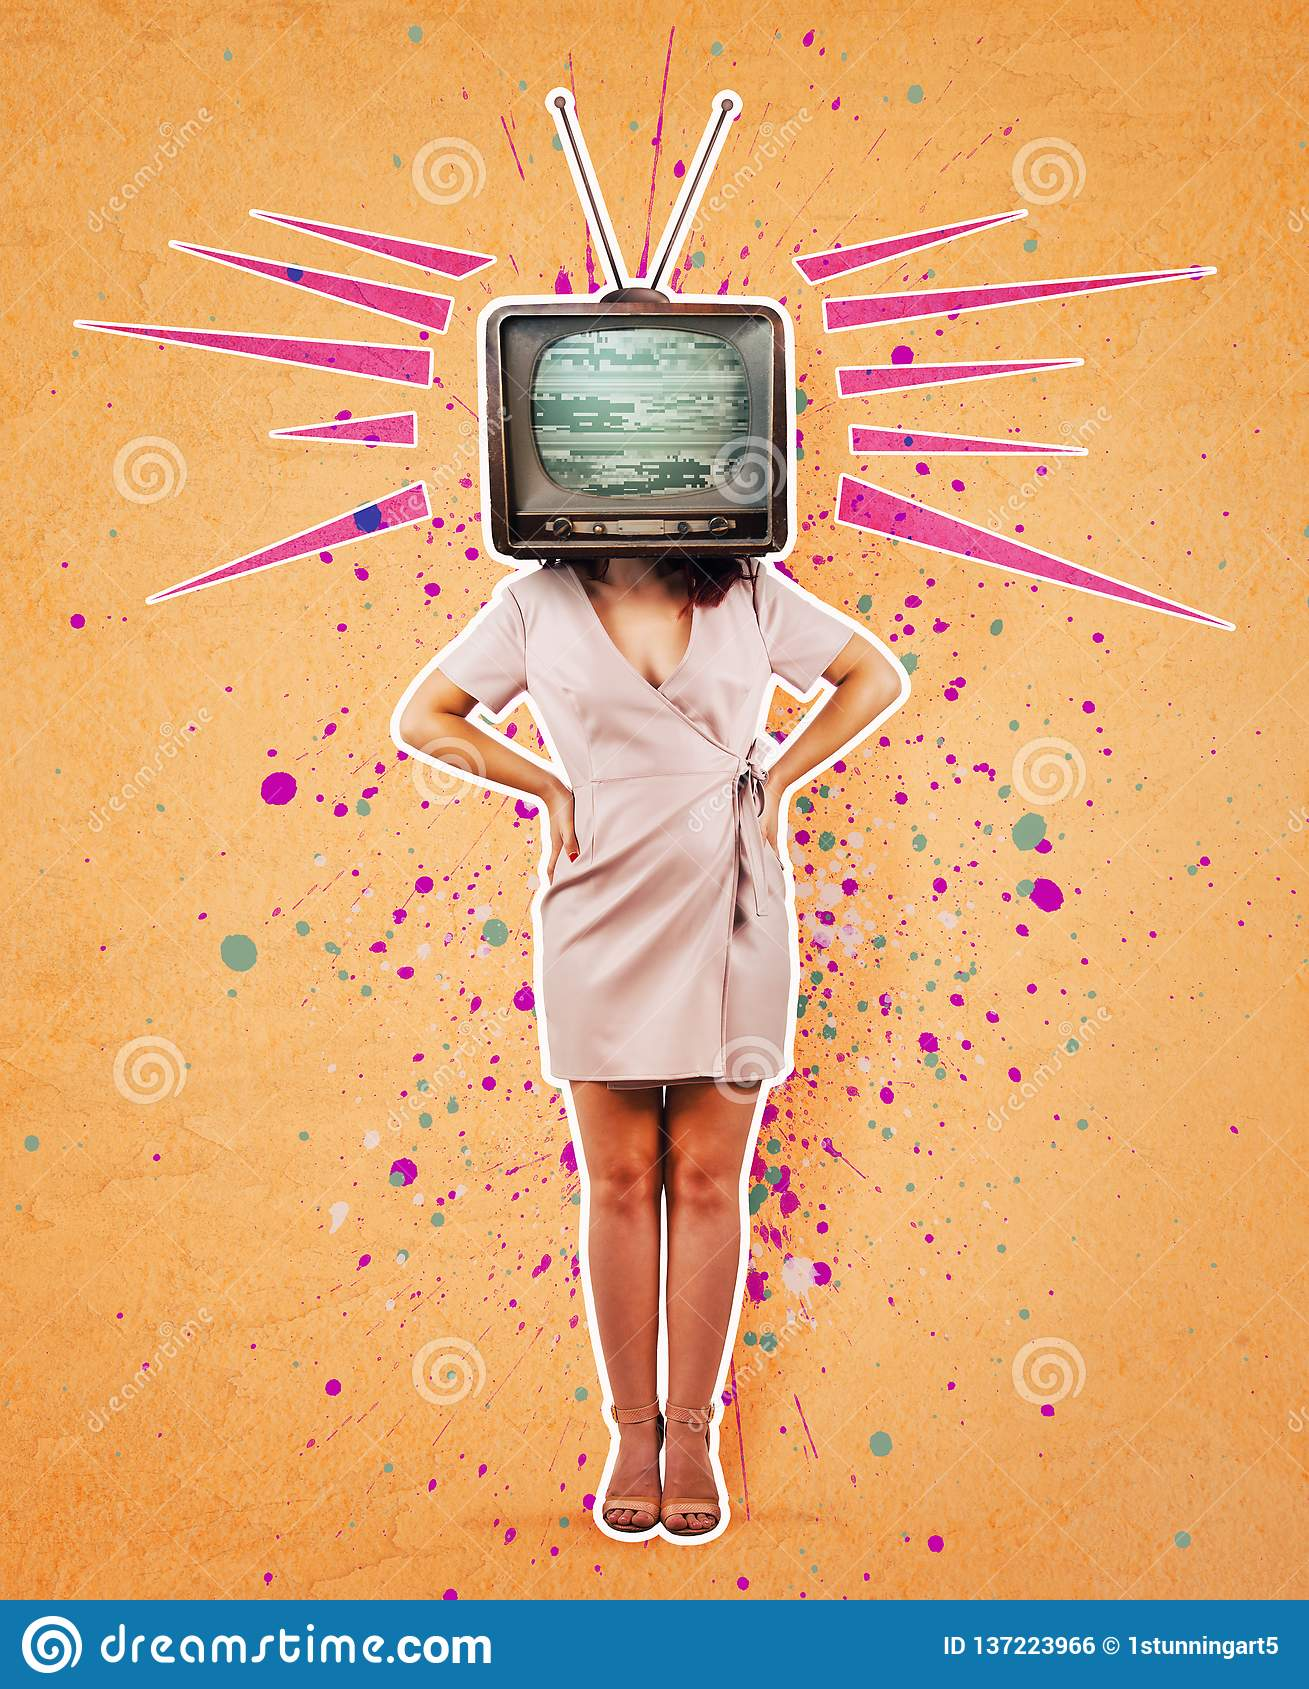 Television propaganda art collage